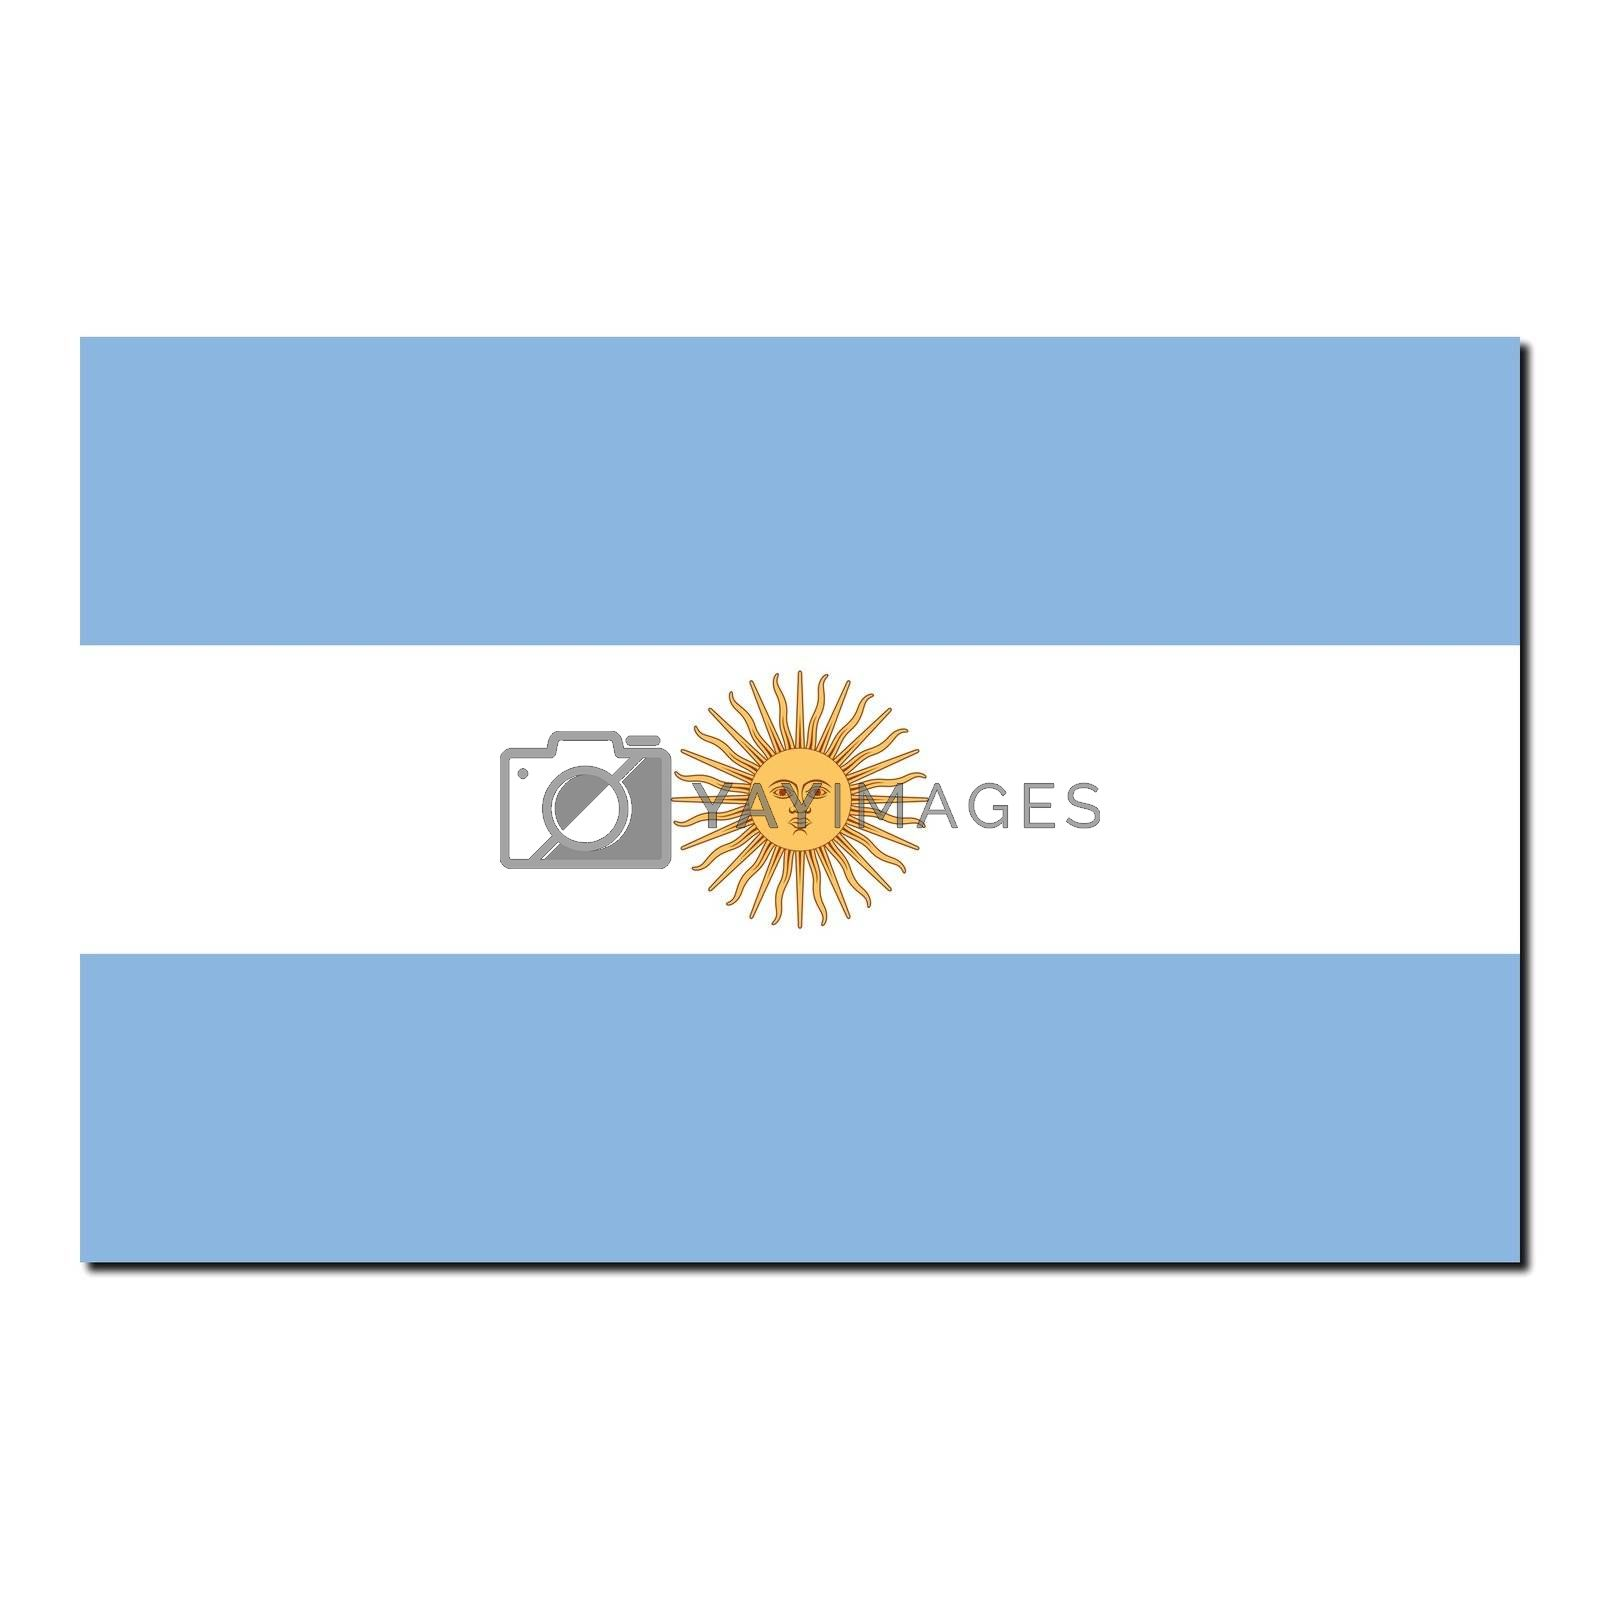 The national flag of Argentina by claudiodivizia